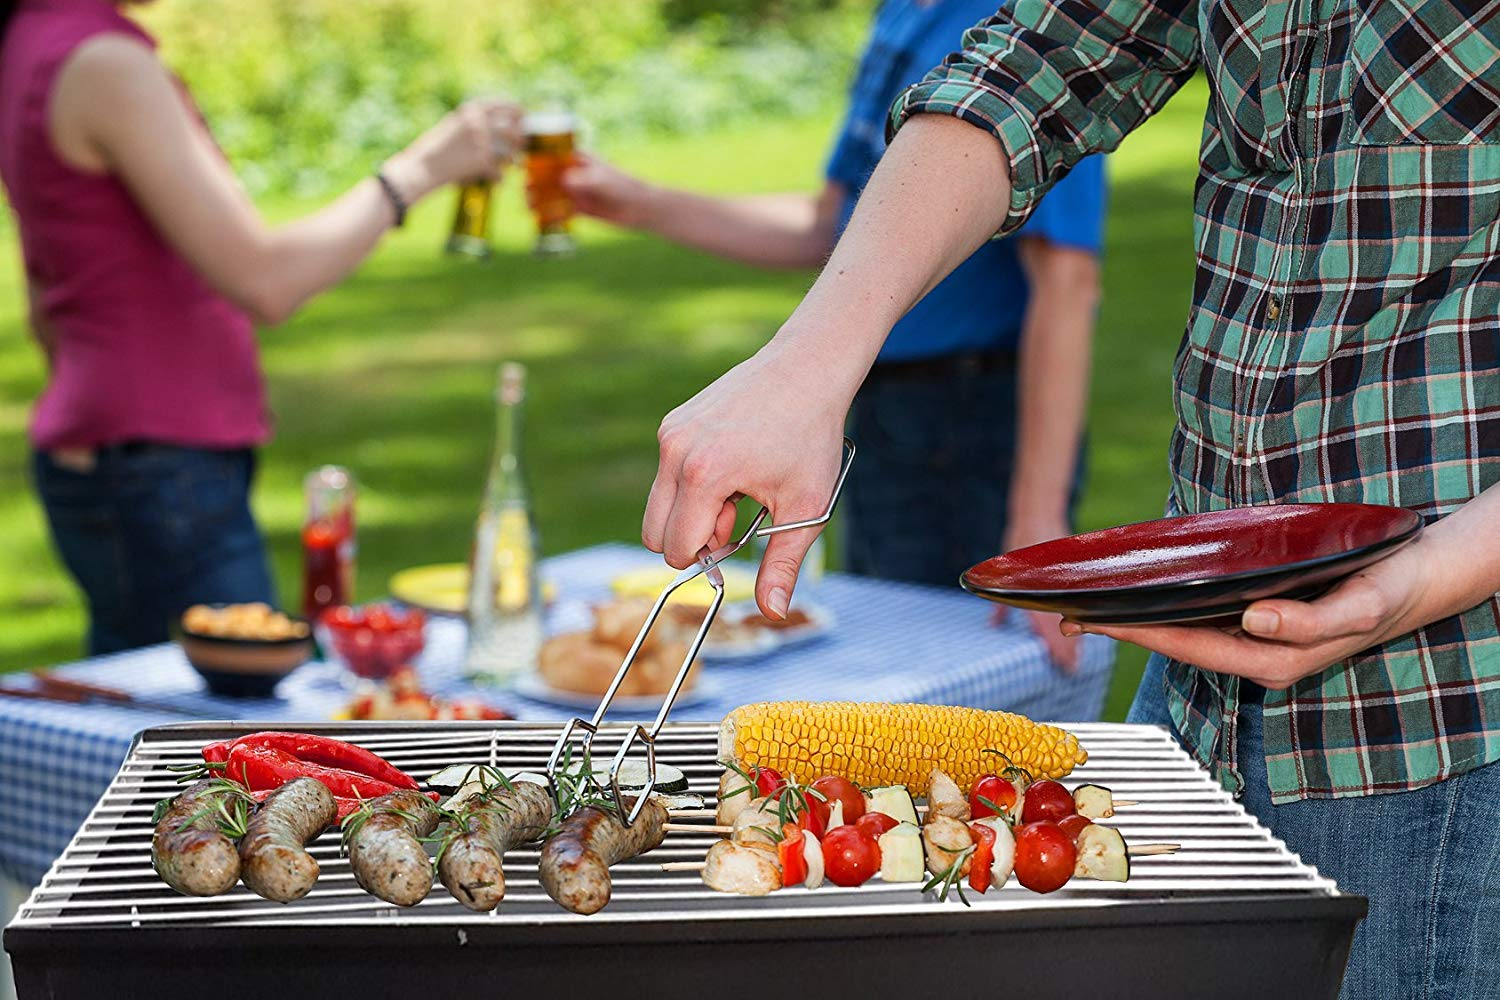 FunkyBuys® Black Half Barrel BBQ Drum Charcoal Grill Champing Barbecue Outdoor Cooking Patio Garden Picnic-(SI-HH1052)